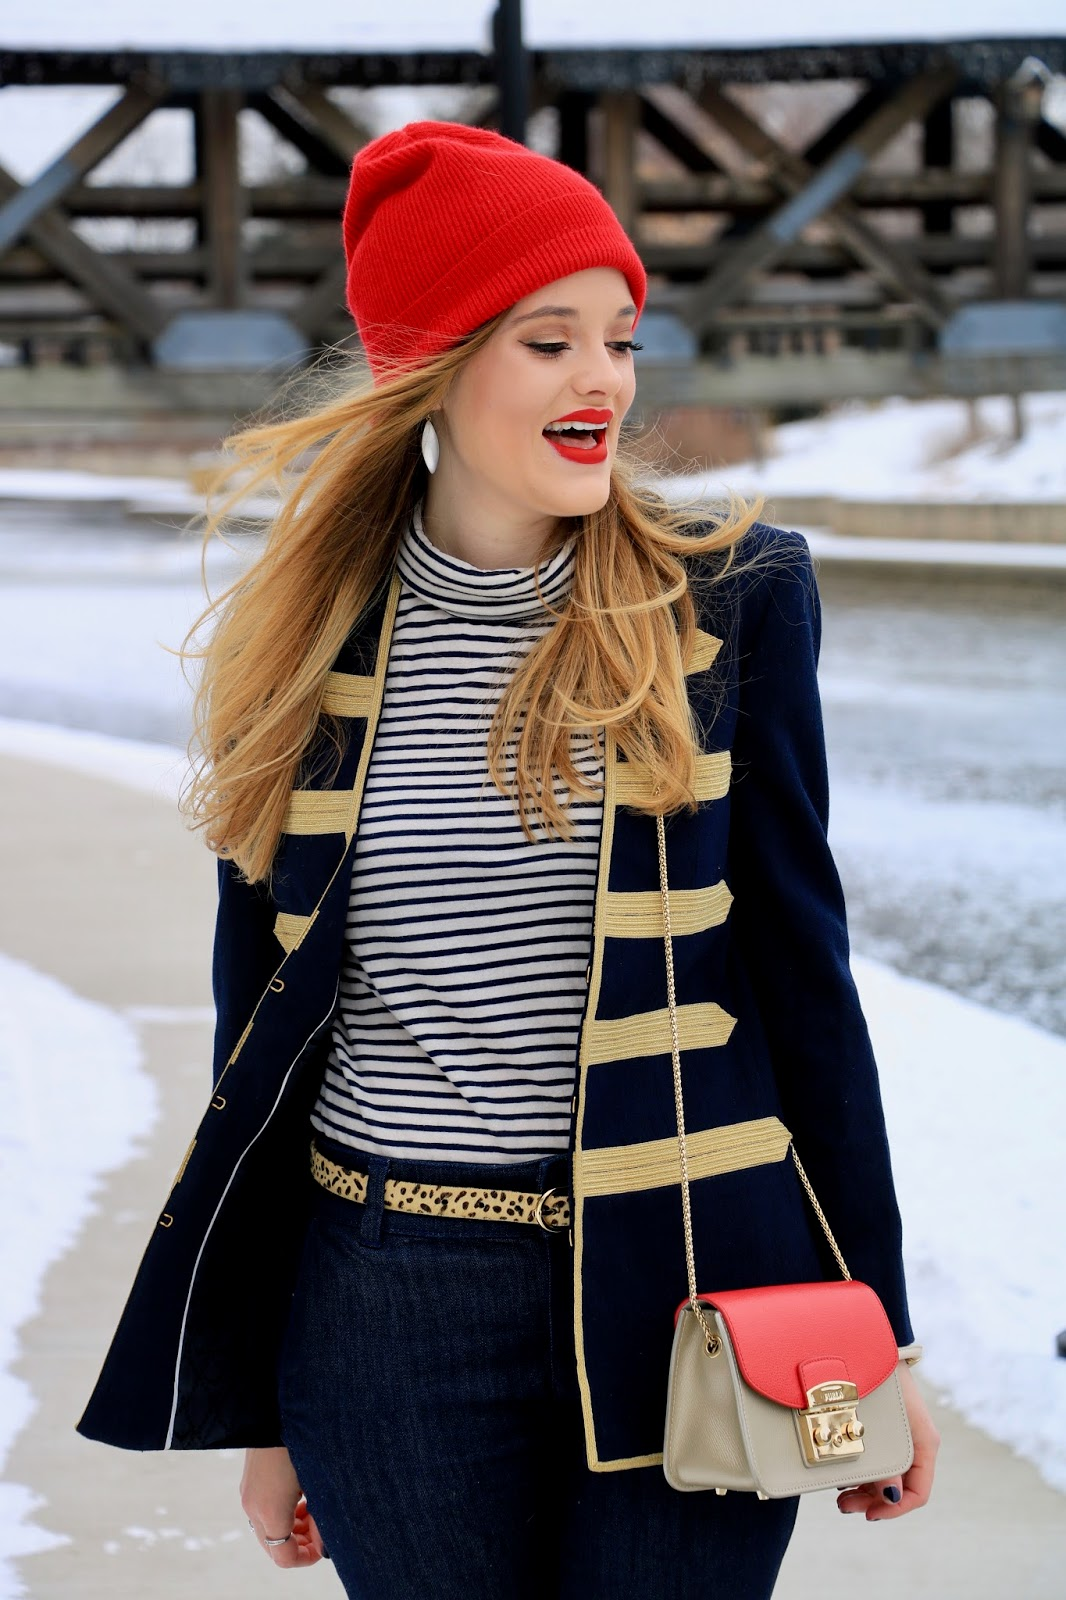 Nyc beauty blogger Kathleen Harper wearing a red lip makeup look